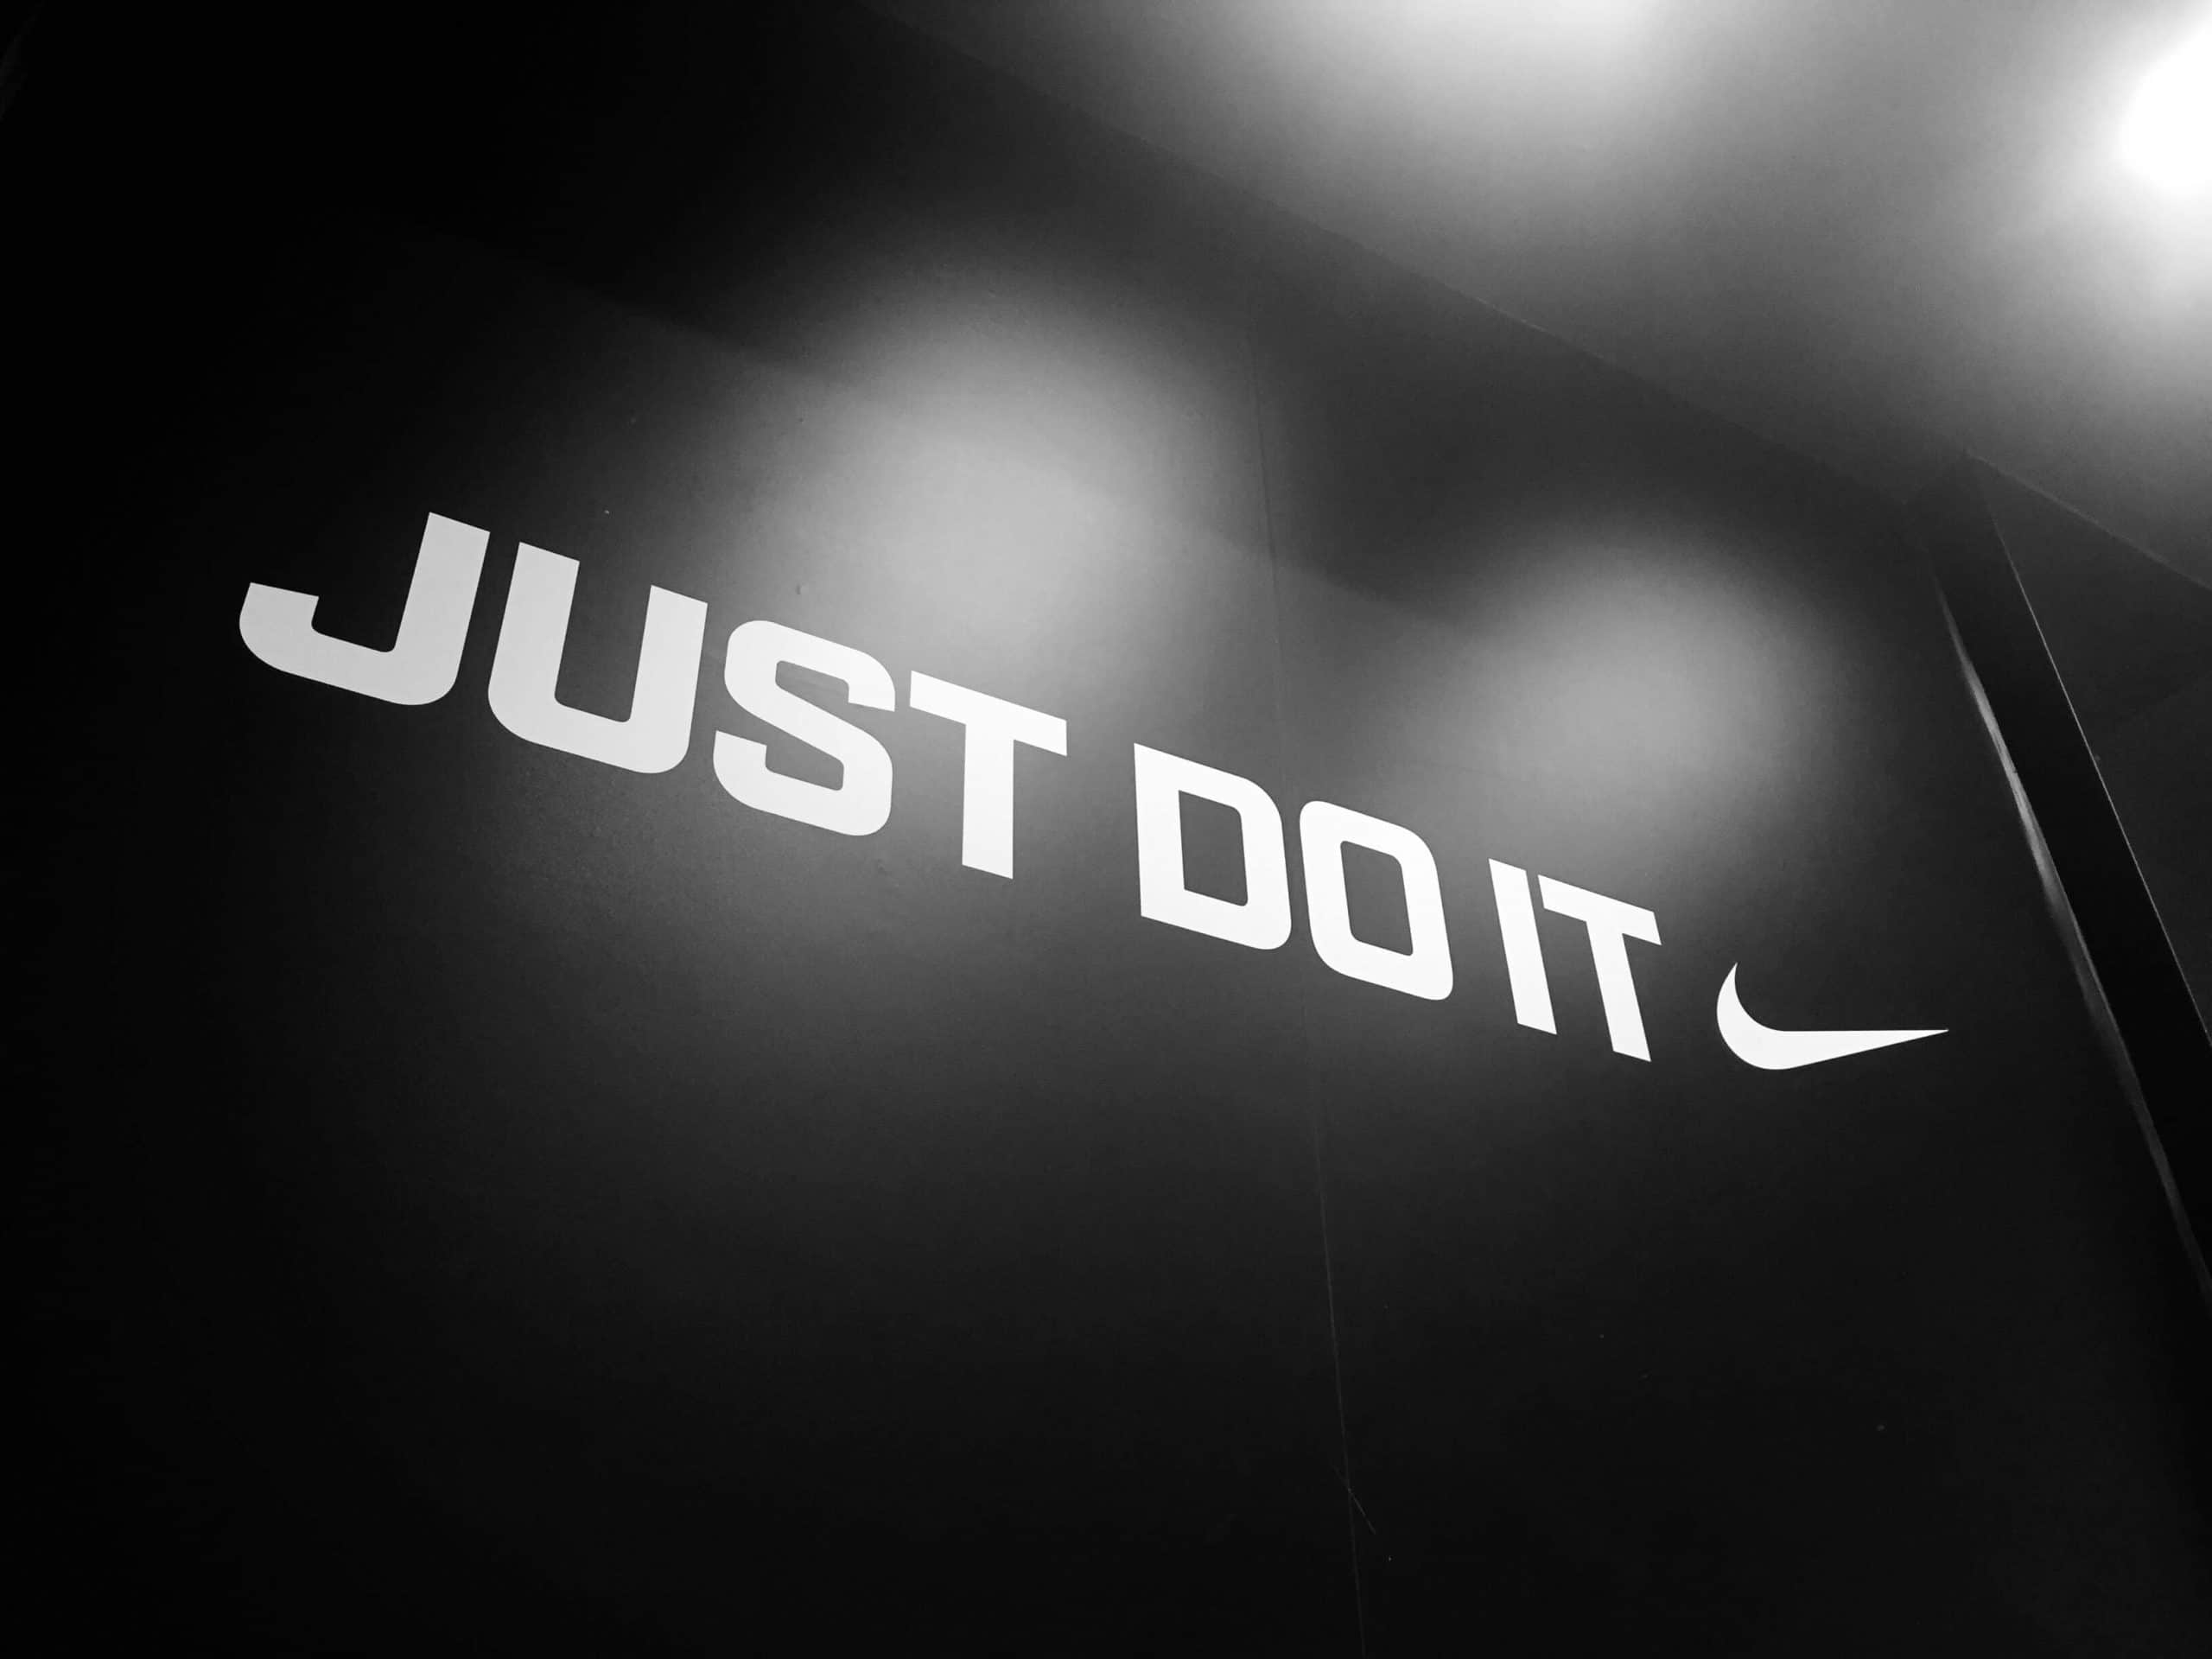 Nike logo, what makes a logo and brand so attractive